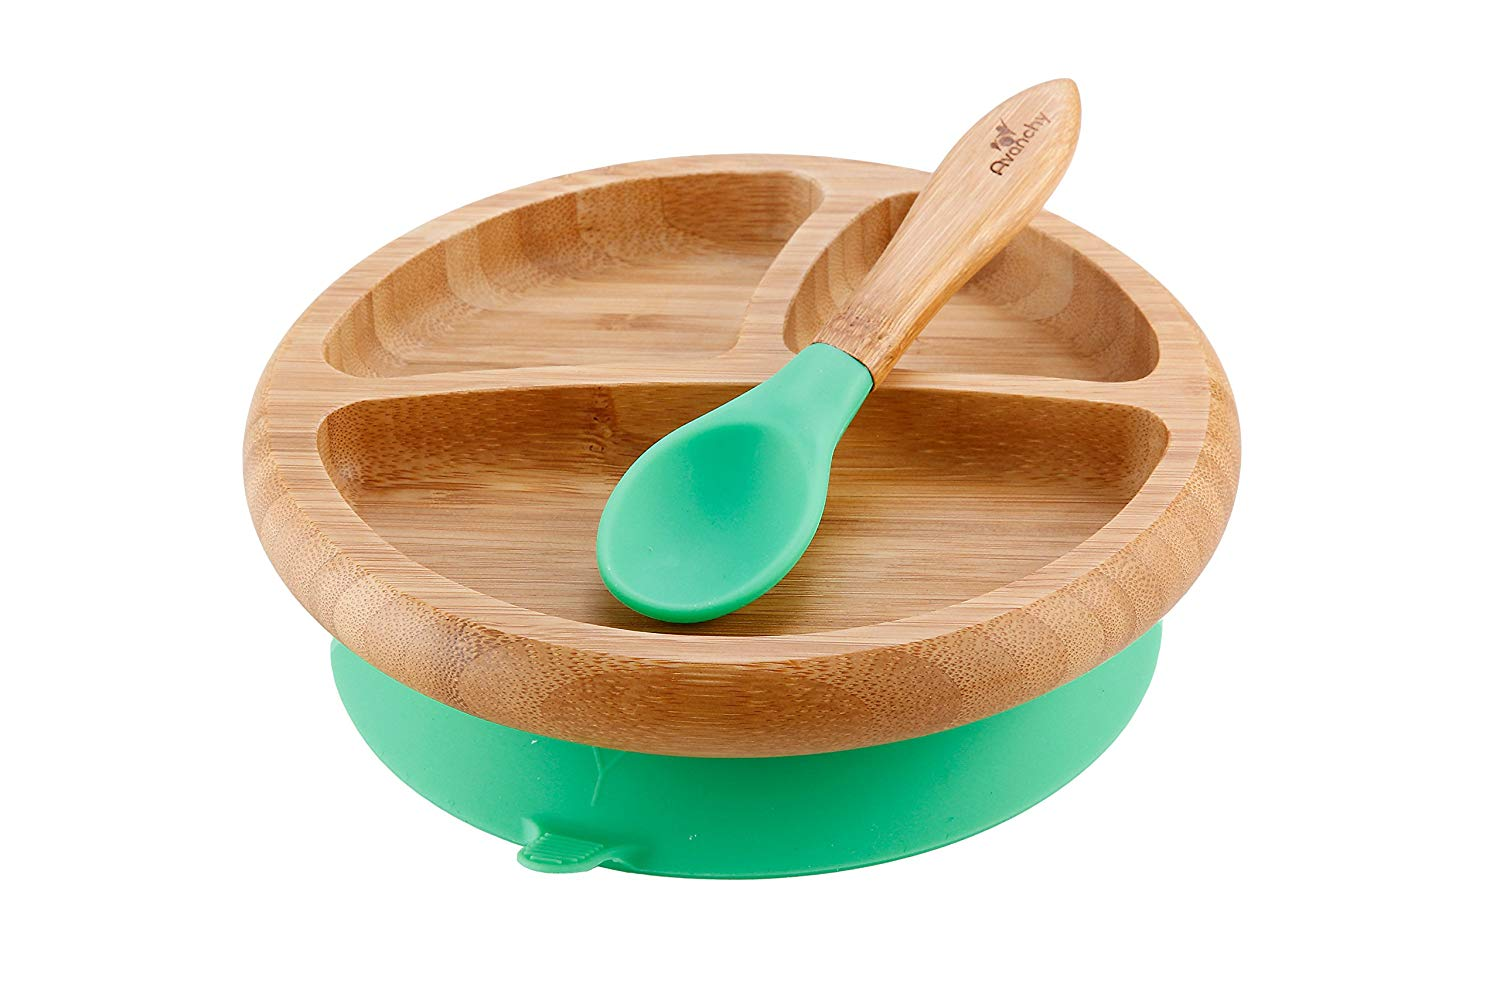 Avanchy Bamboo Plate - We love this bamboo plate with a silicone suction bottom for our baby. They also have bowls and bigger plates. The large, silicone-covered spoons are perfect for teething babies!